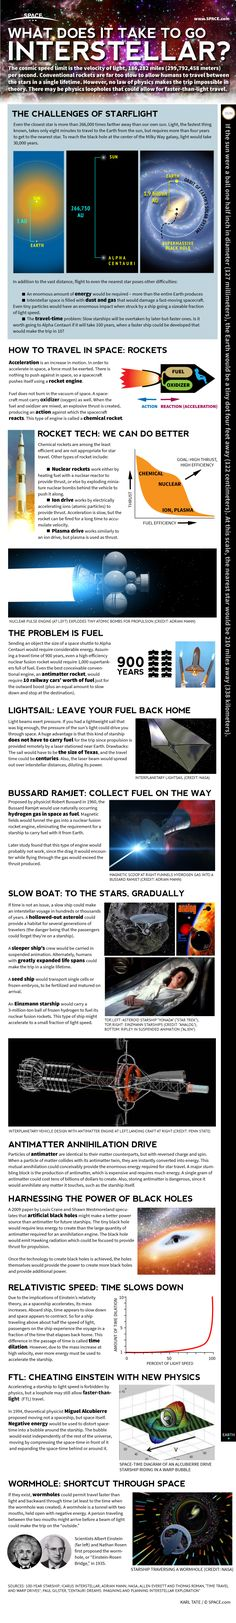 What humanity would have to do to reach a star in less than 100 years. Find out in this SPACE.com infographic.